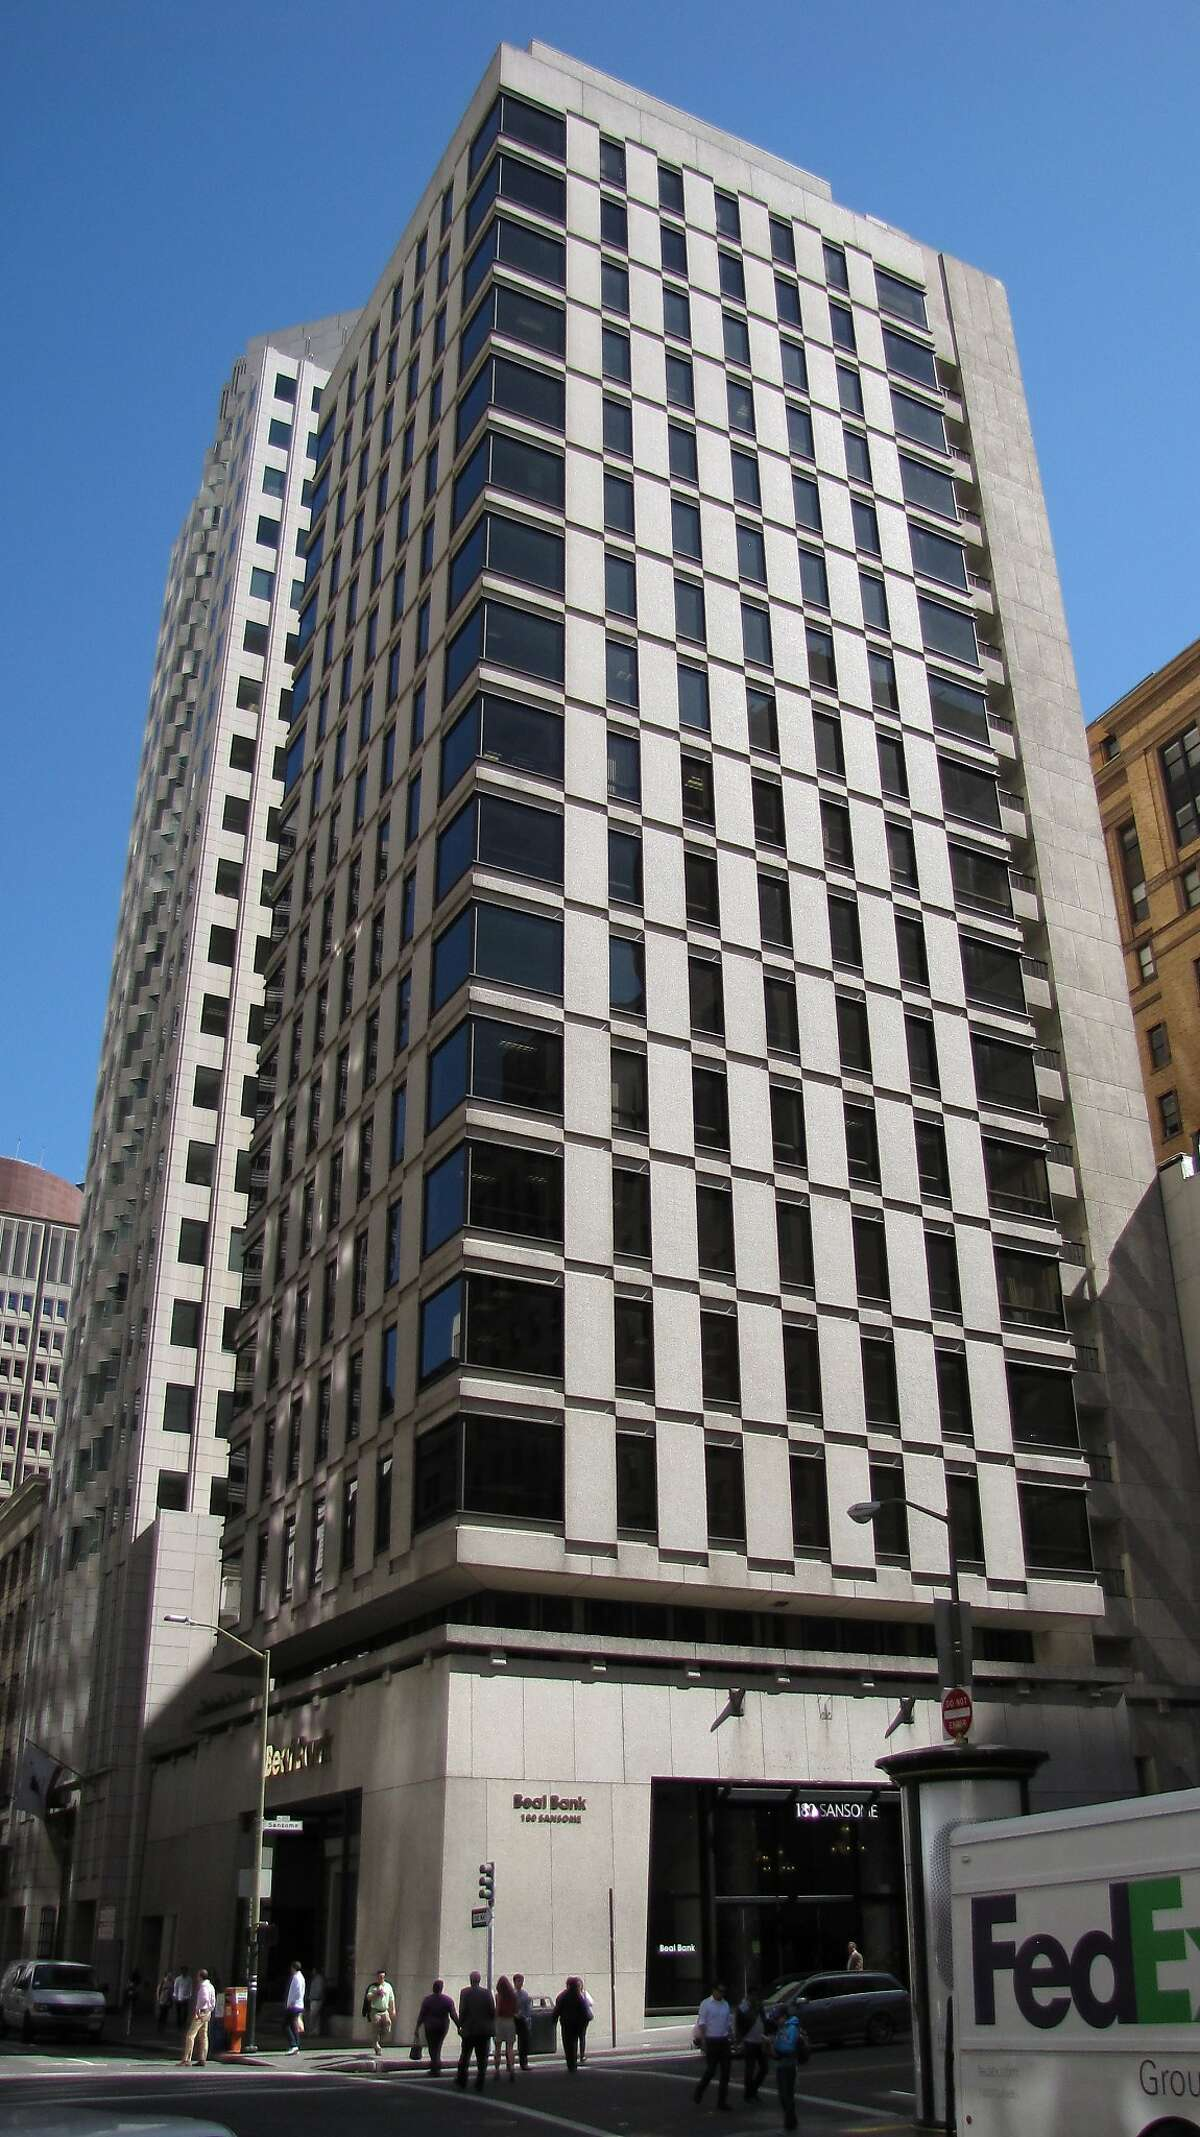 The 18-story tower at 180 Sansome St. is from 1964. The architect is Hertzka & Knowles, and the texture concrete modernism fits its Financial District context surprisingly well.